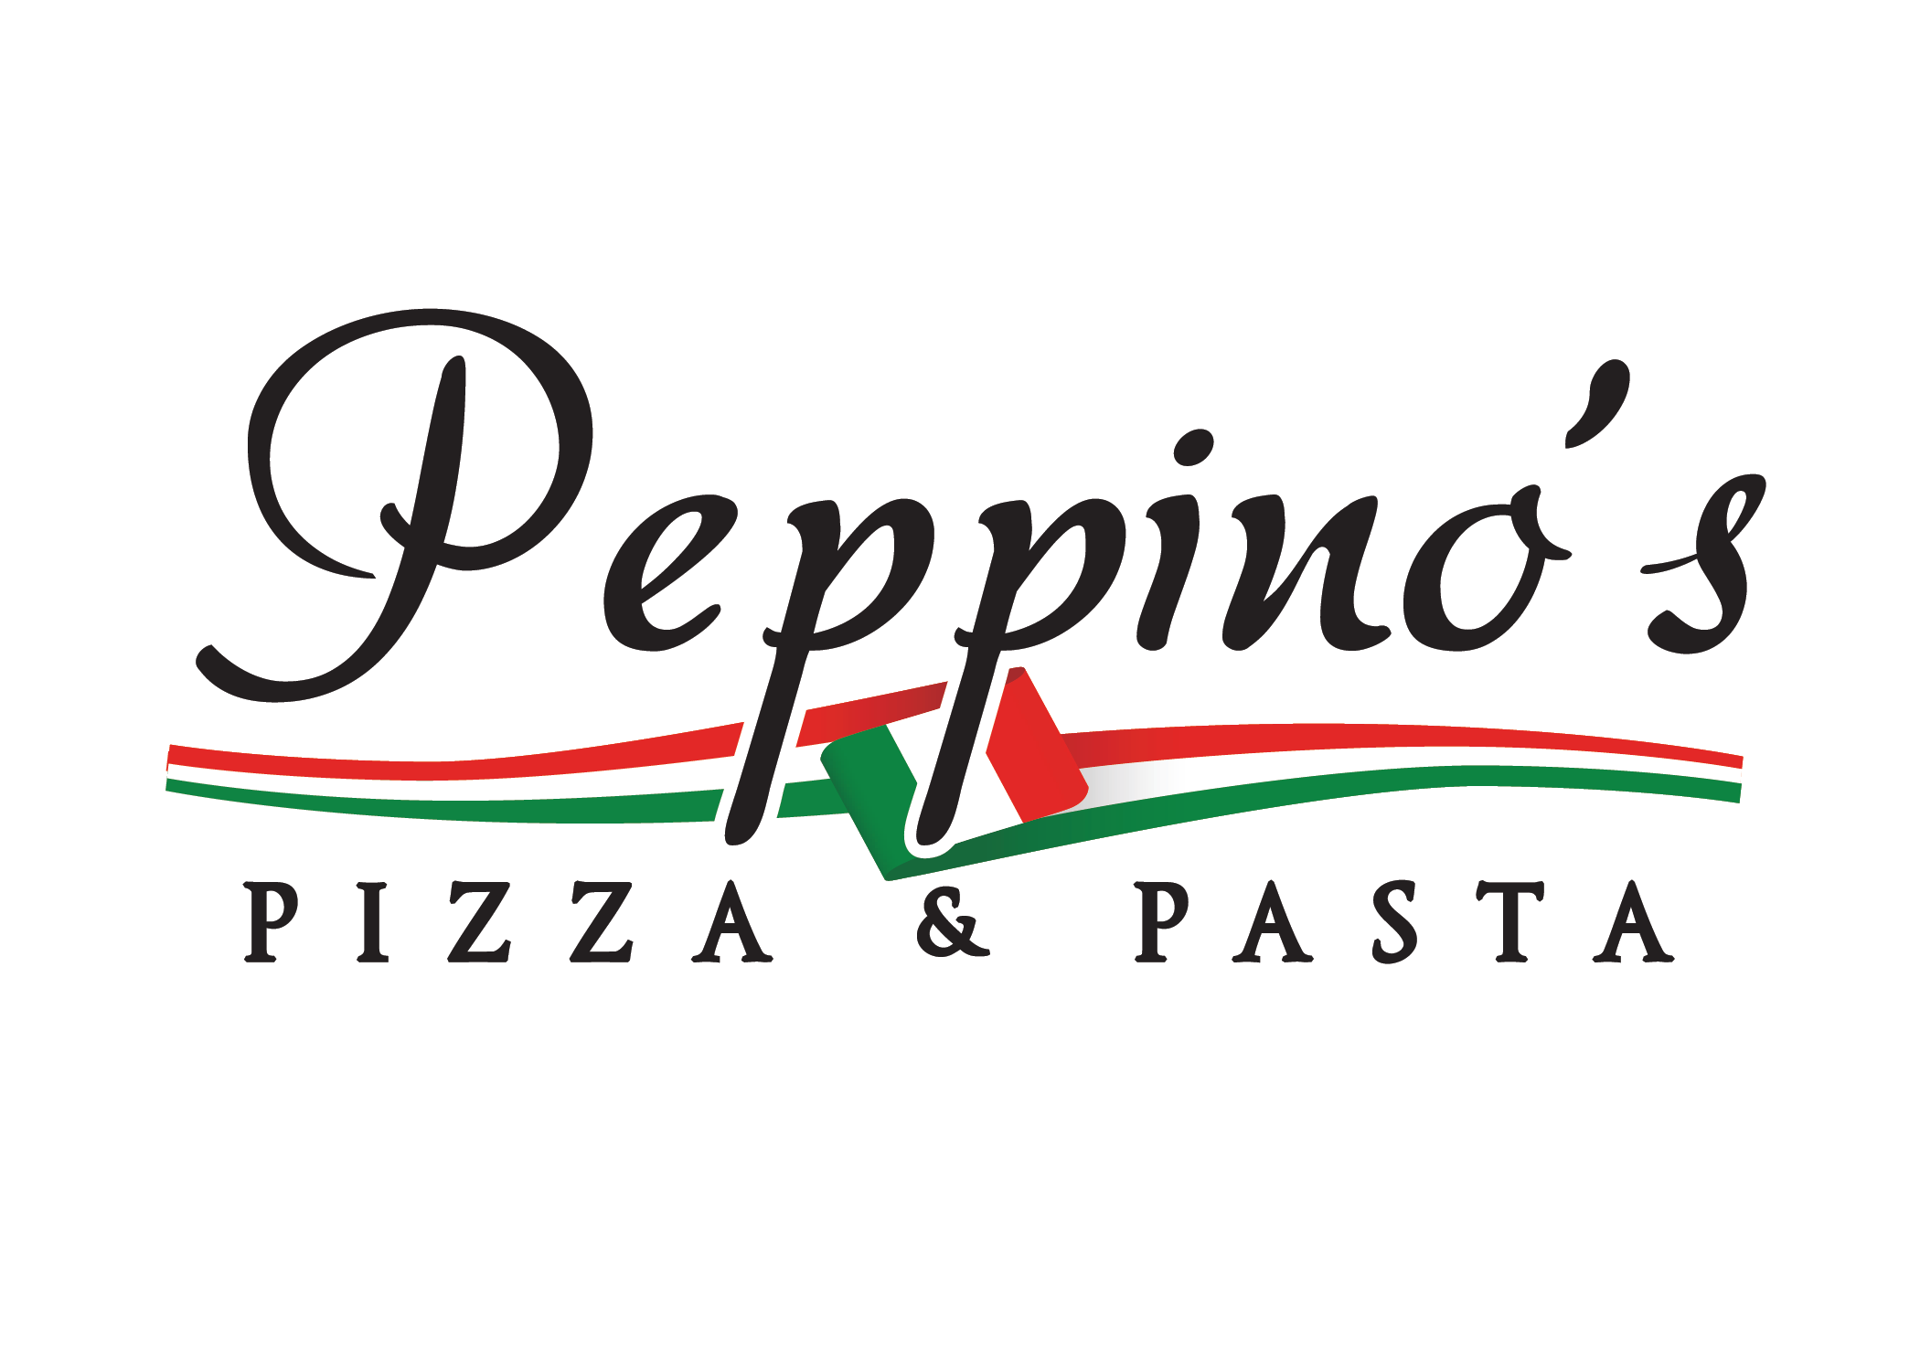 Peppino's logo